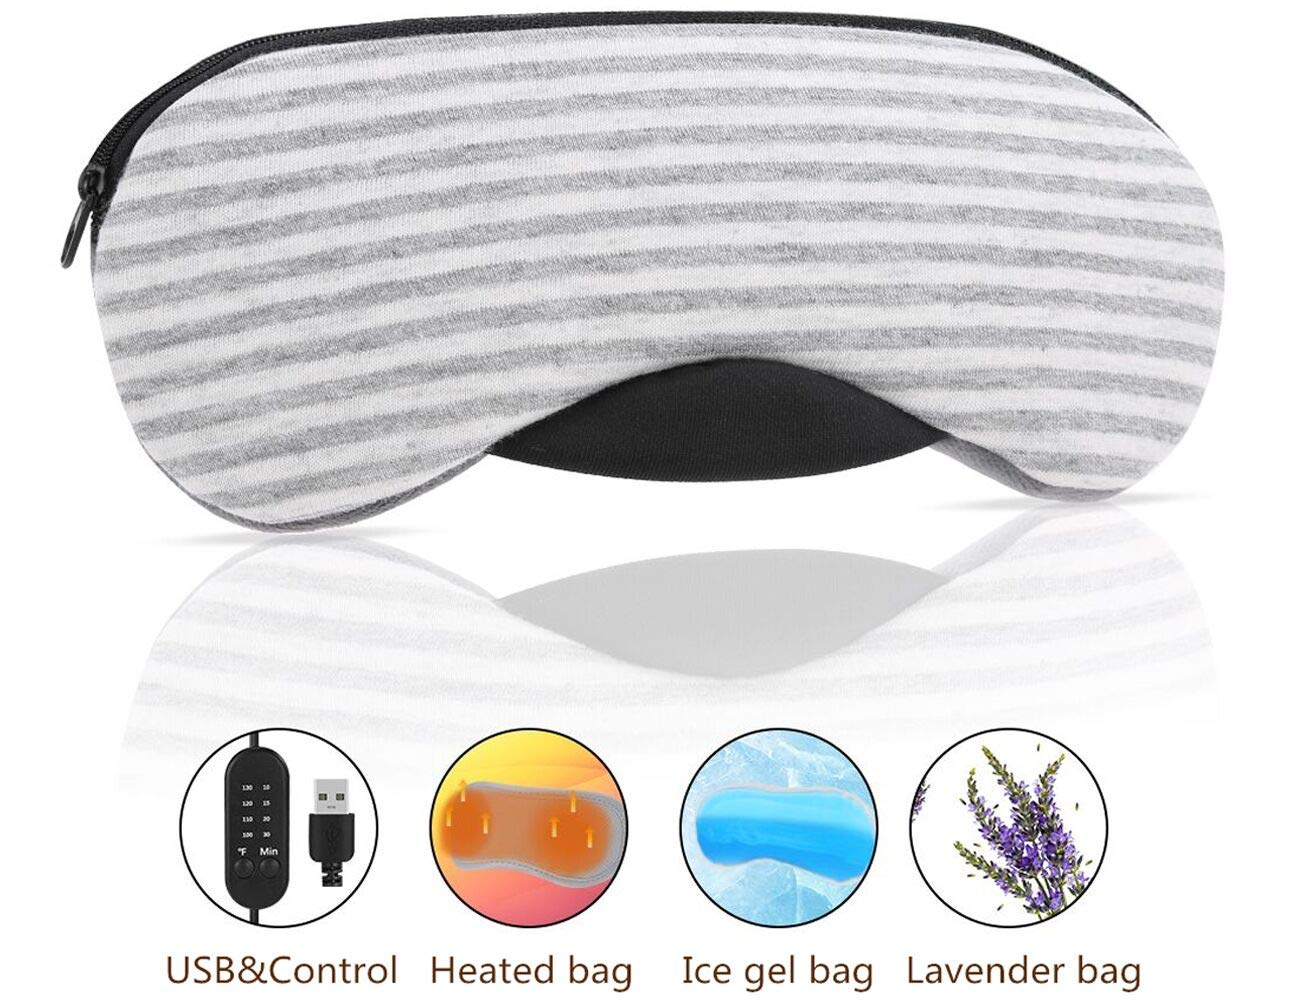 Heated Eye Mask, Esonmus USB Sleep Mask with Adjustable Temperature and Time Control, Warm and Cold Massage to Relieve Dry Eye Syndrome, Eye Stress, Tired Eyes,with Earplugs